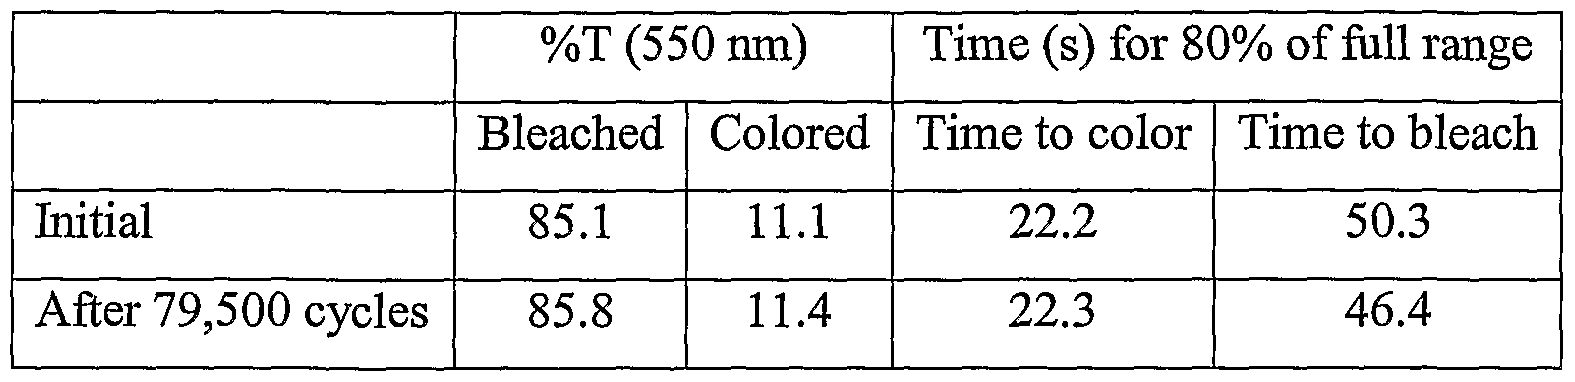 WO2004085567A2 - Electrochromic mirrors and other